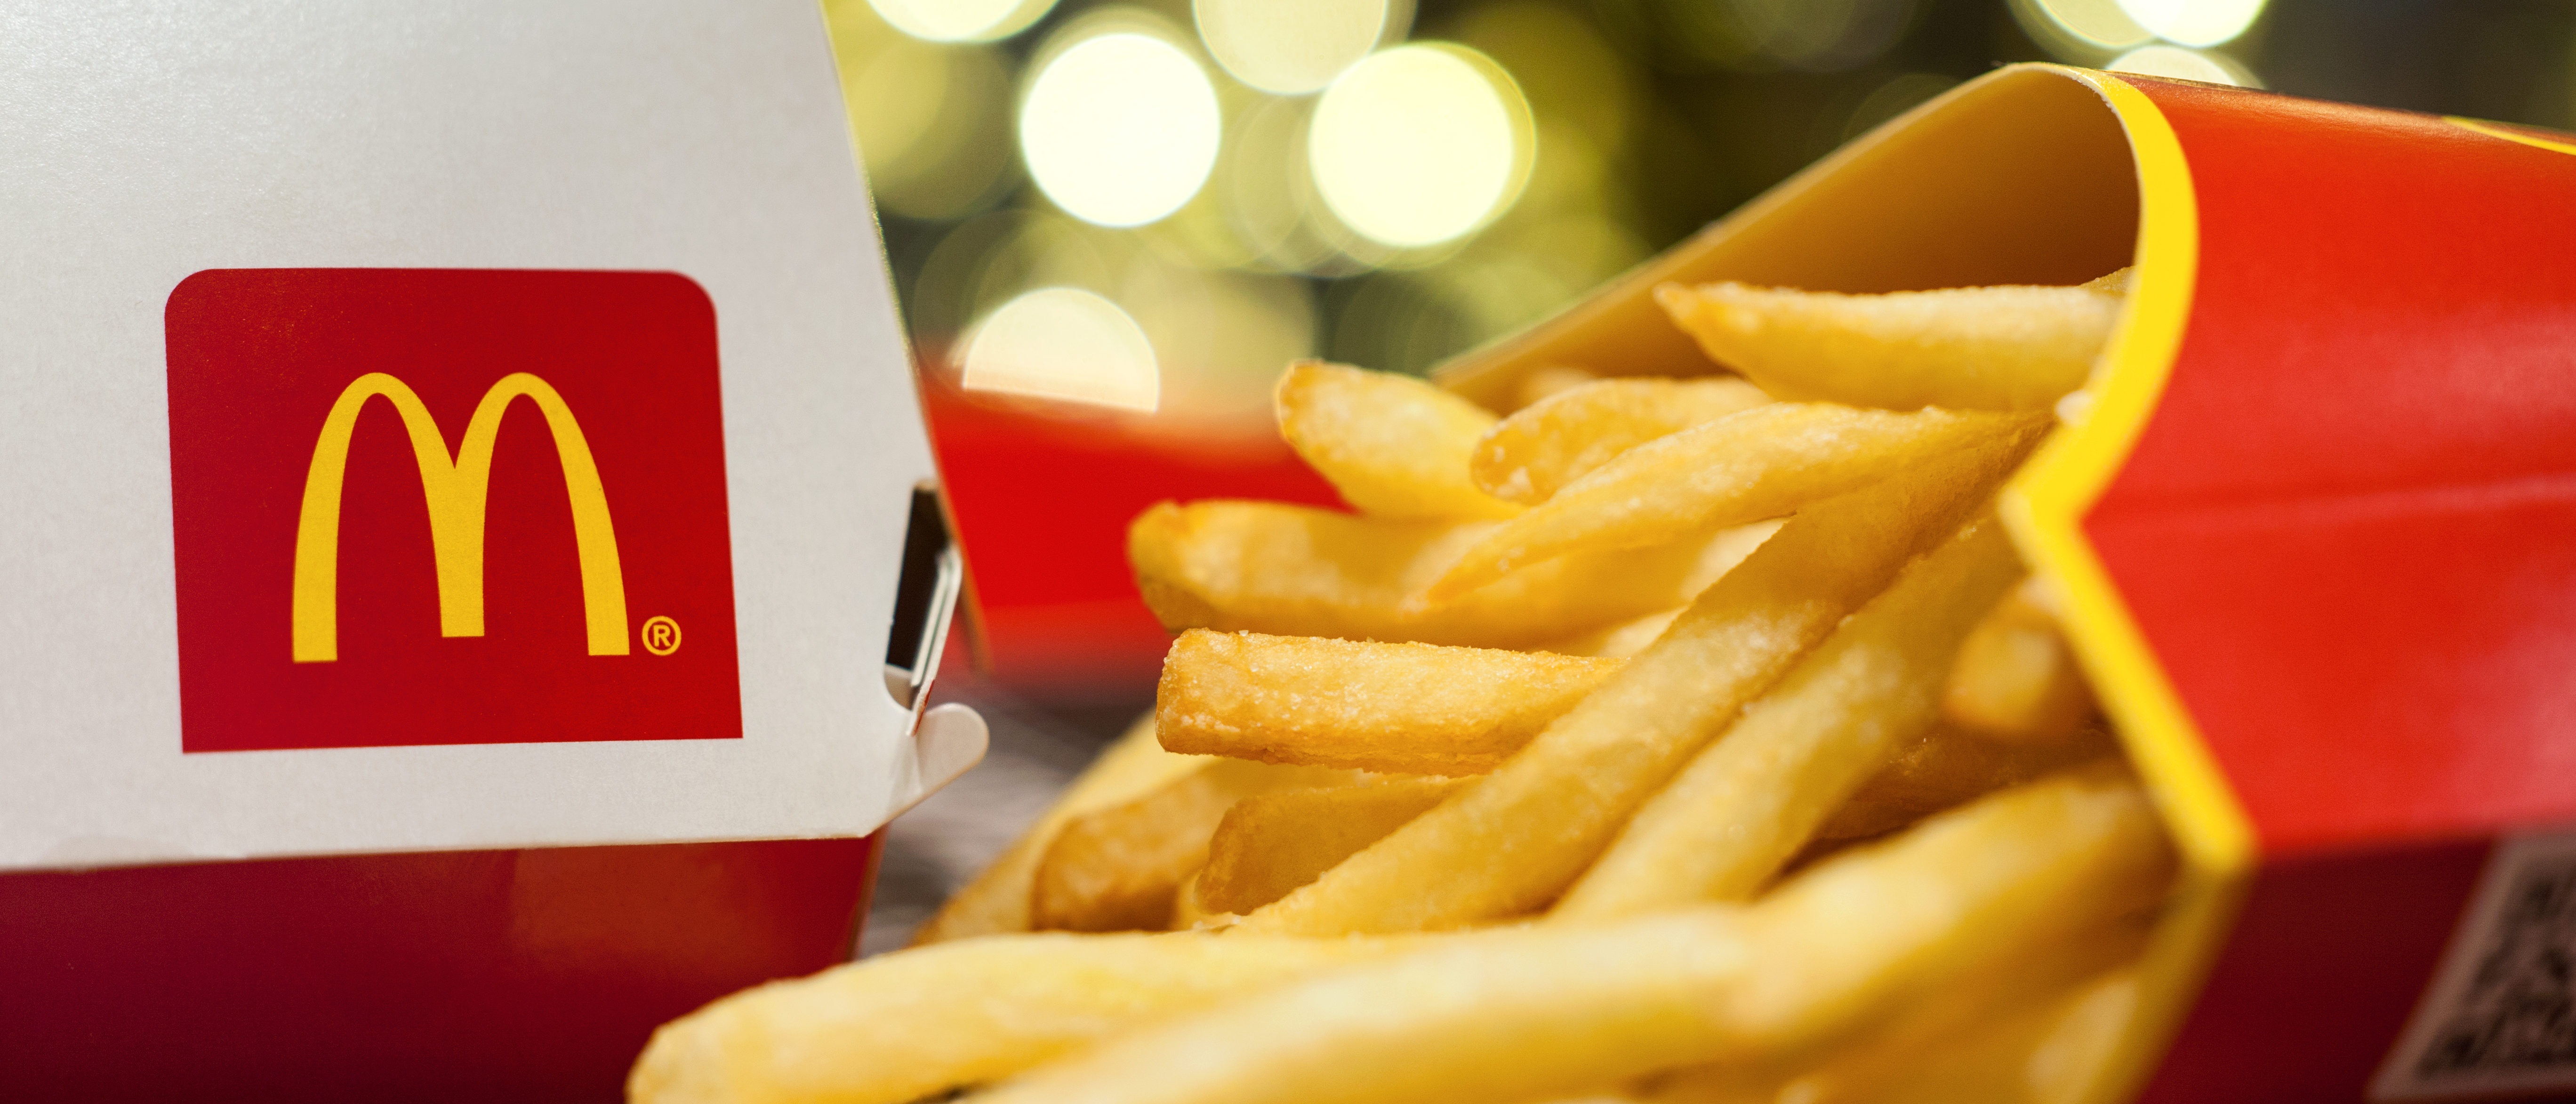 McDonald's logo and French fries (Shutterstock/8th.creator)